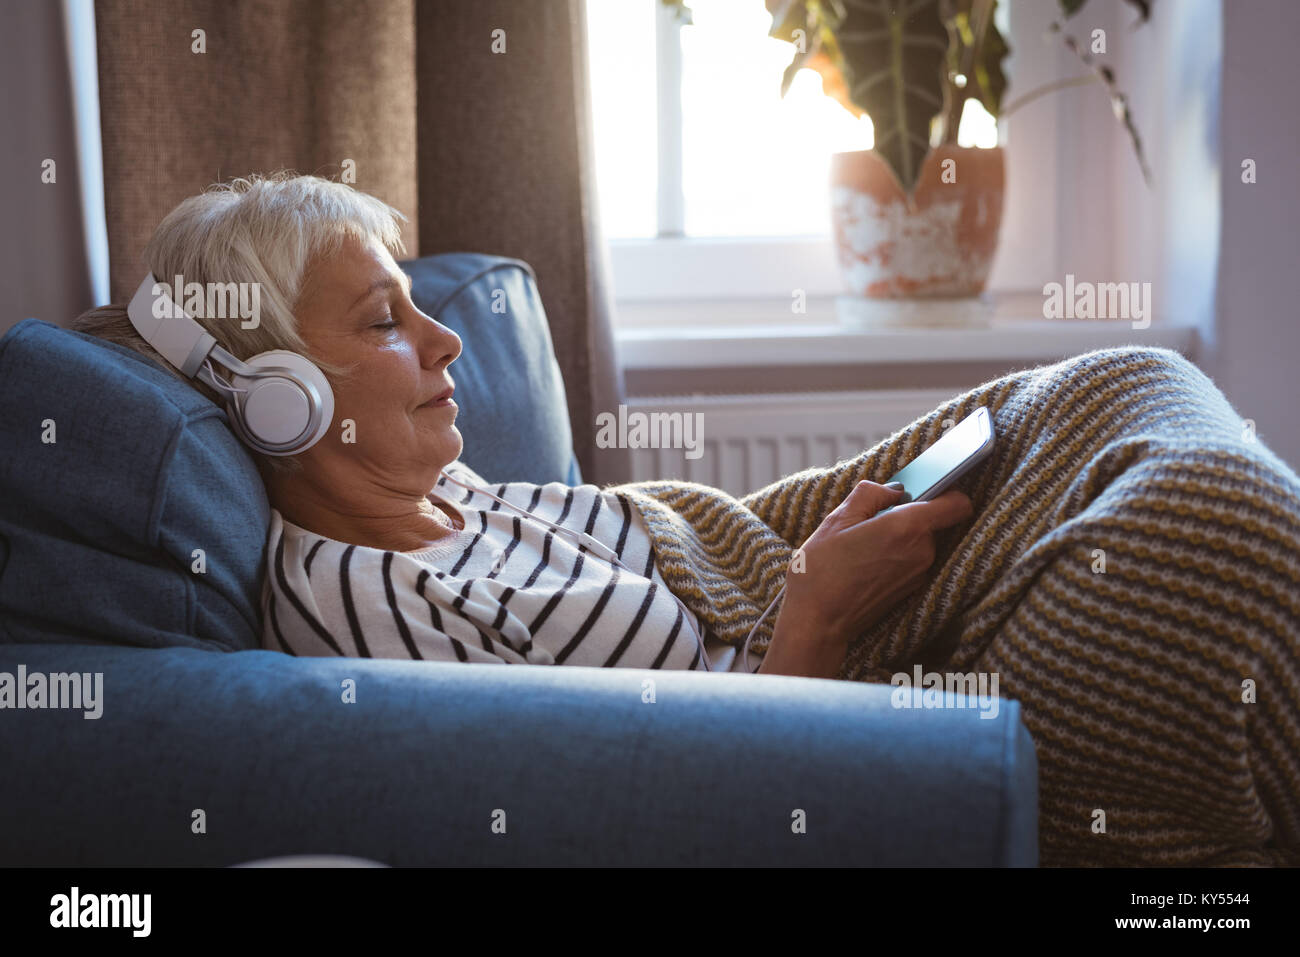 Senior woman listing to music on phone while siting on sofa in living room - Stock Image